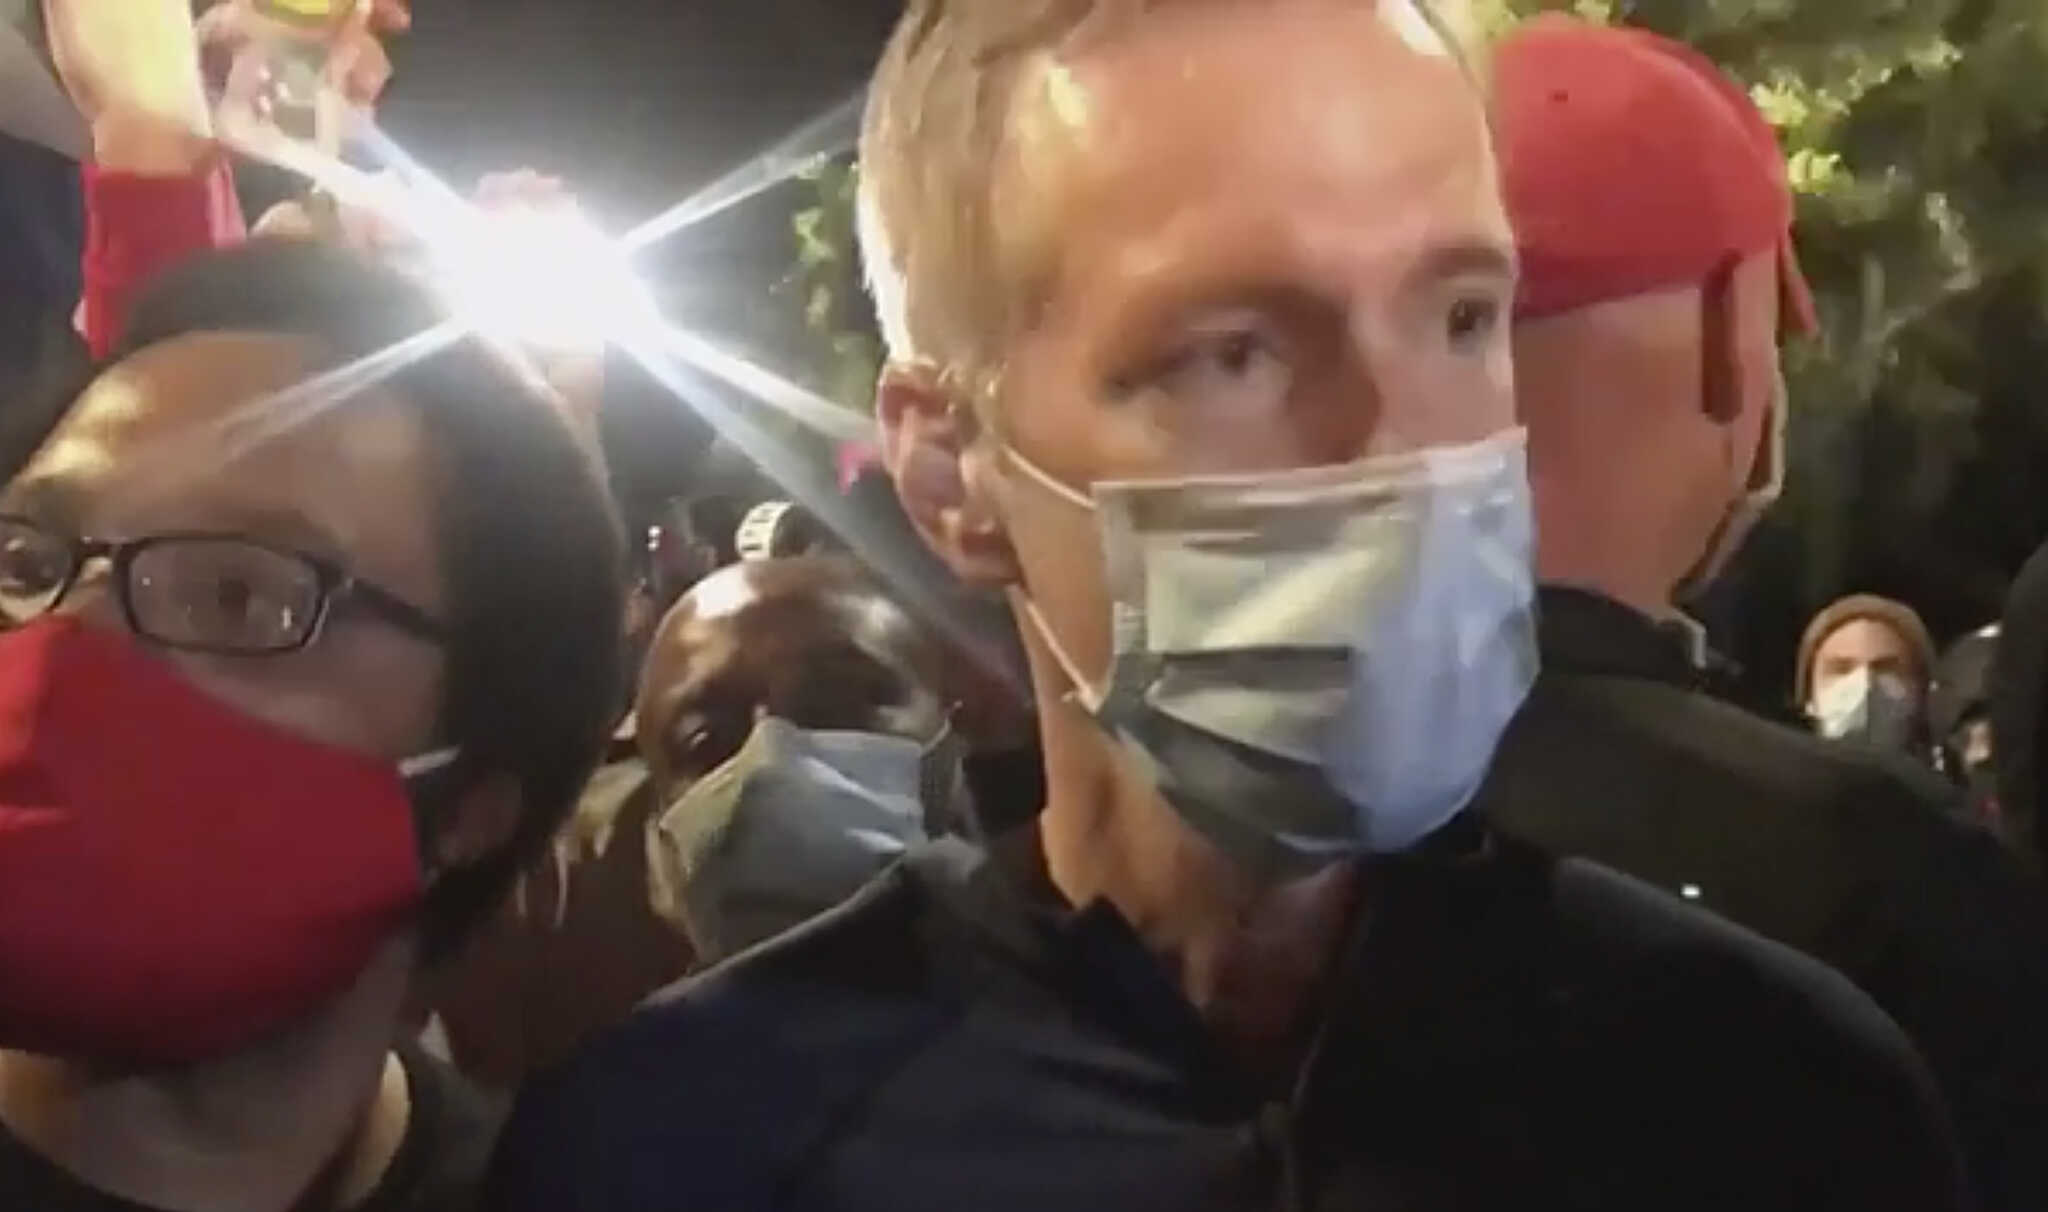 'He's Lying': Eyewitness Calls Out Portland Mayor Over Fabricated Tear Gas Incident